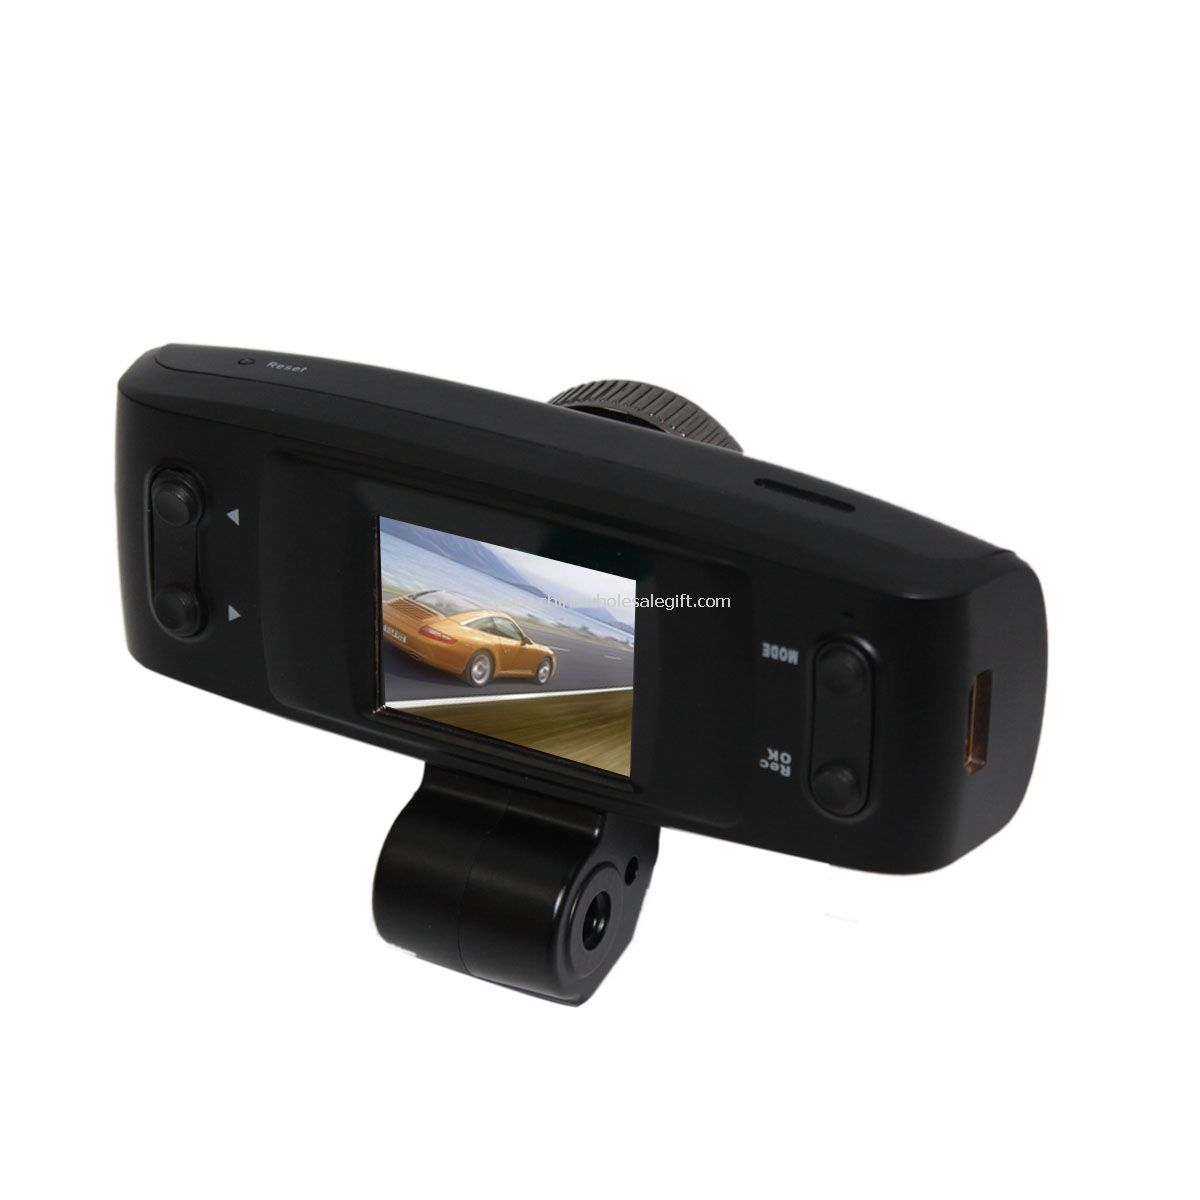 High definition 1080p video camcorder GPS with screen